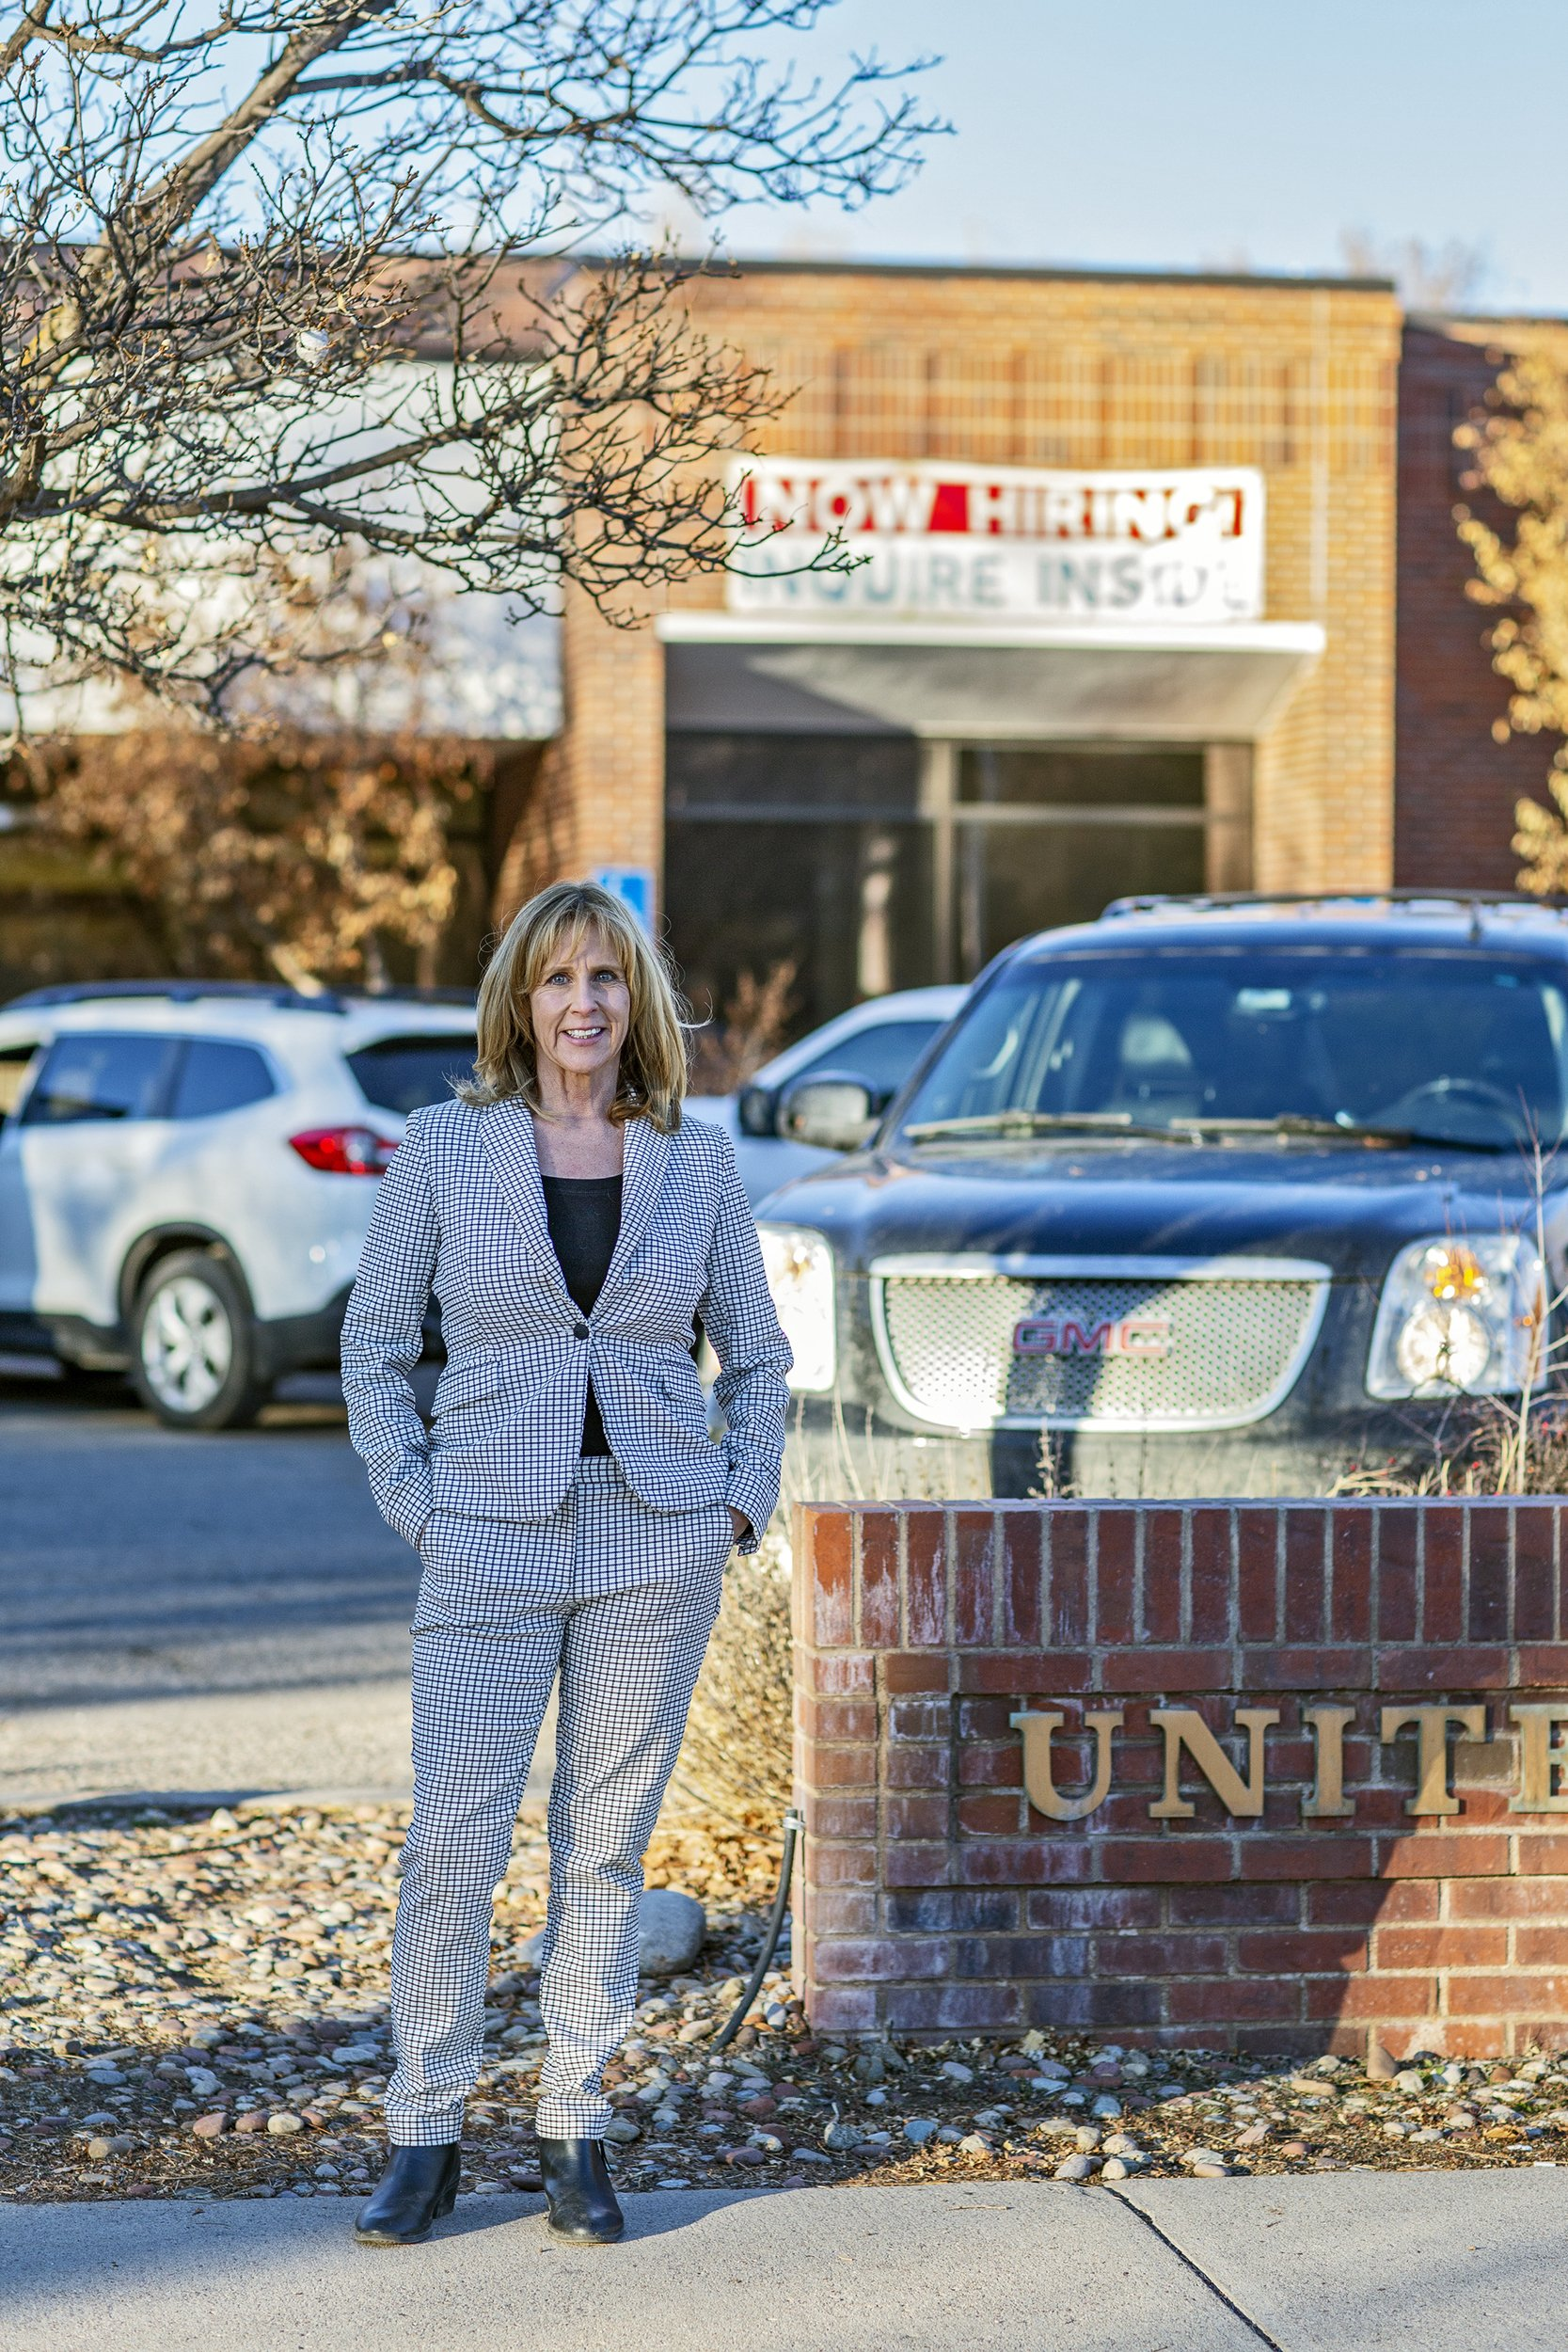 Postmaster Kim Ballantine took over the Carbondale post office in July.